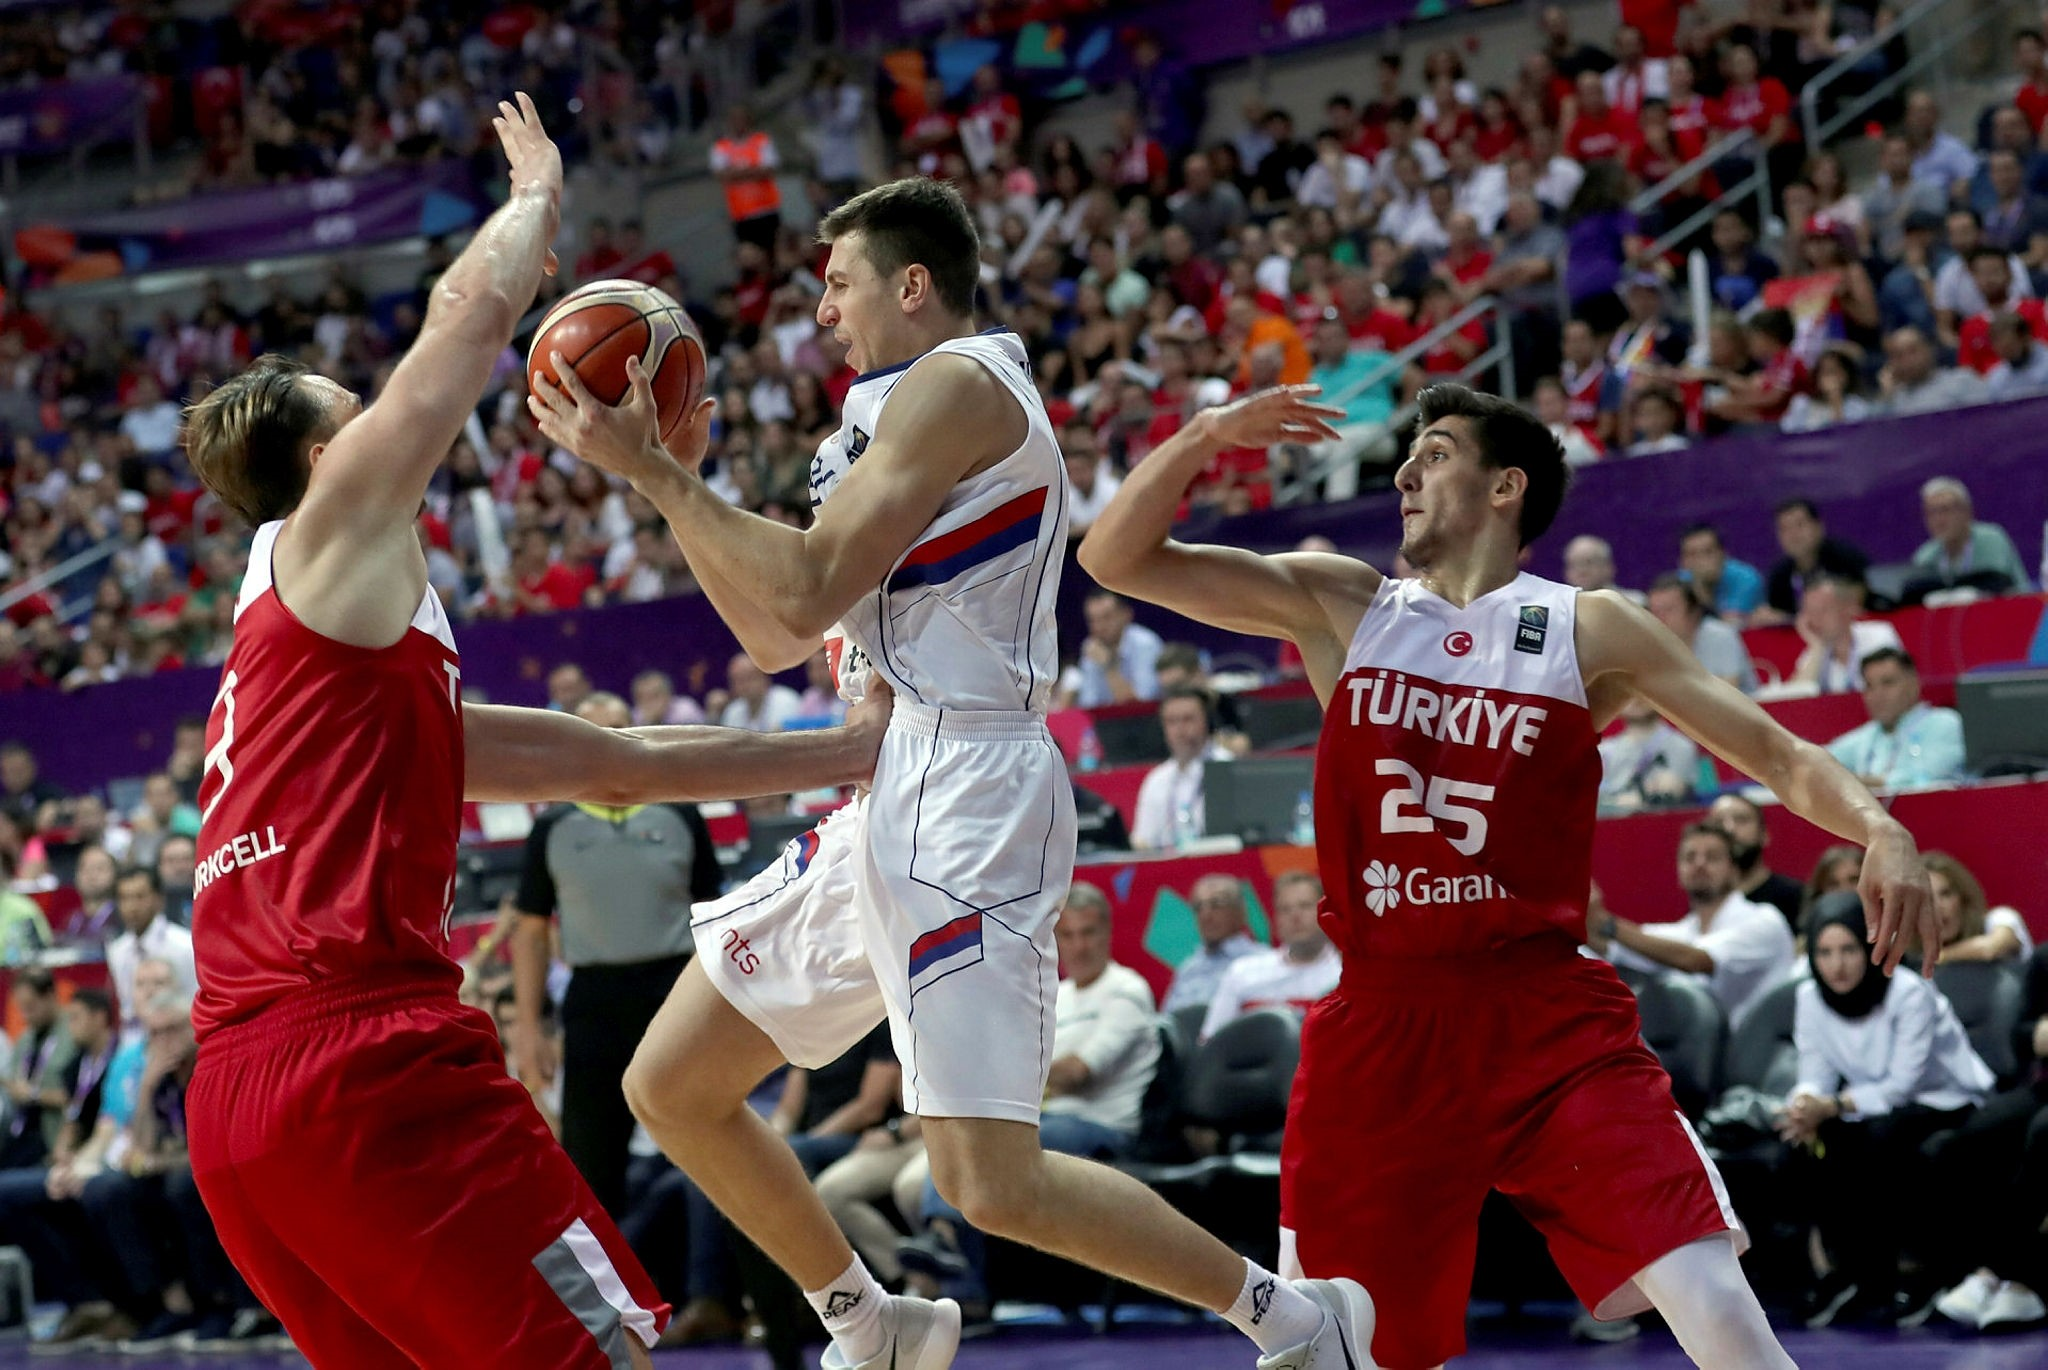 Serbia's Vladimir Lucic (C) in action against Turkey's Semih Erden (L) and Kenan Sipahi during the EuroBasket 2017 group D match between Turkey and Serbia, in Istanbul, Turkey 04 September 2017. (EPA Photo)